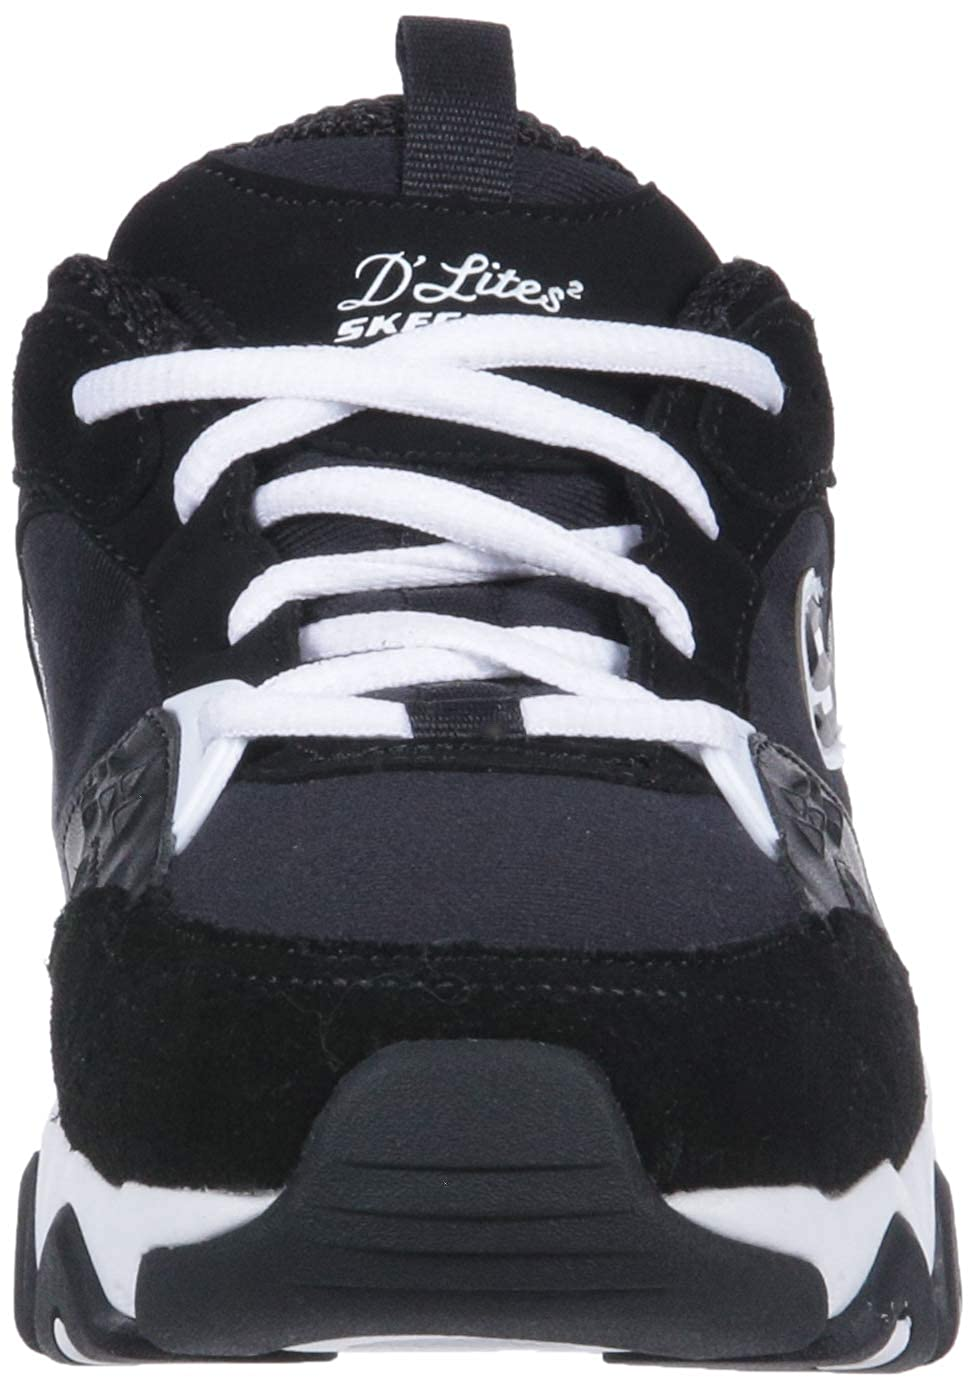 Skechers-D-039-Lites-Women-039-s-Casual-Lightweight-Fashion-Sneakers-Athletic-Shoes thumbnail 41